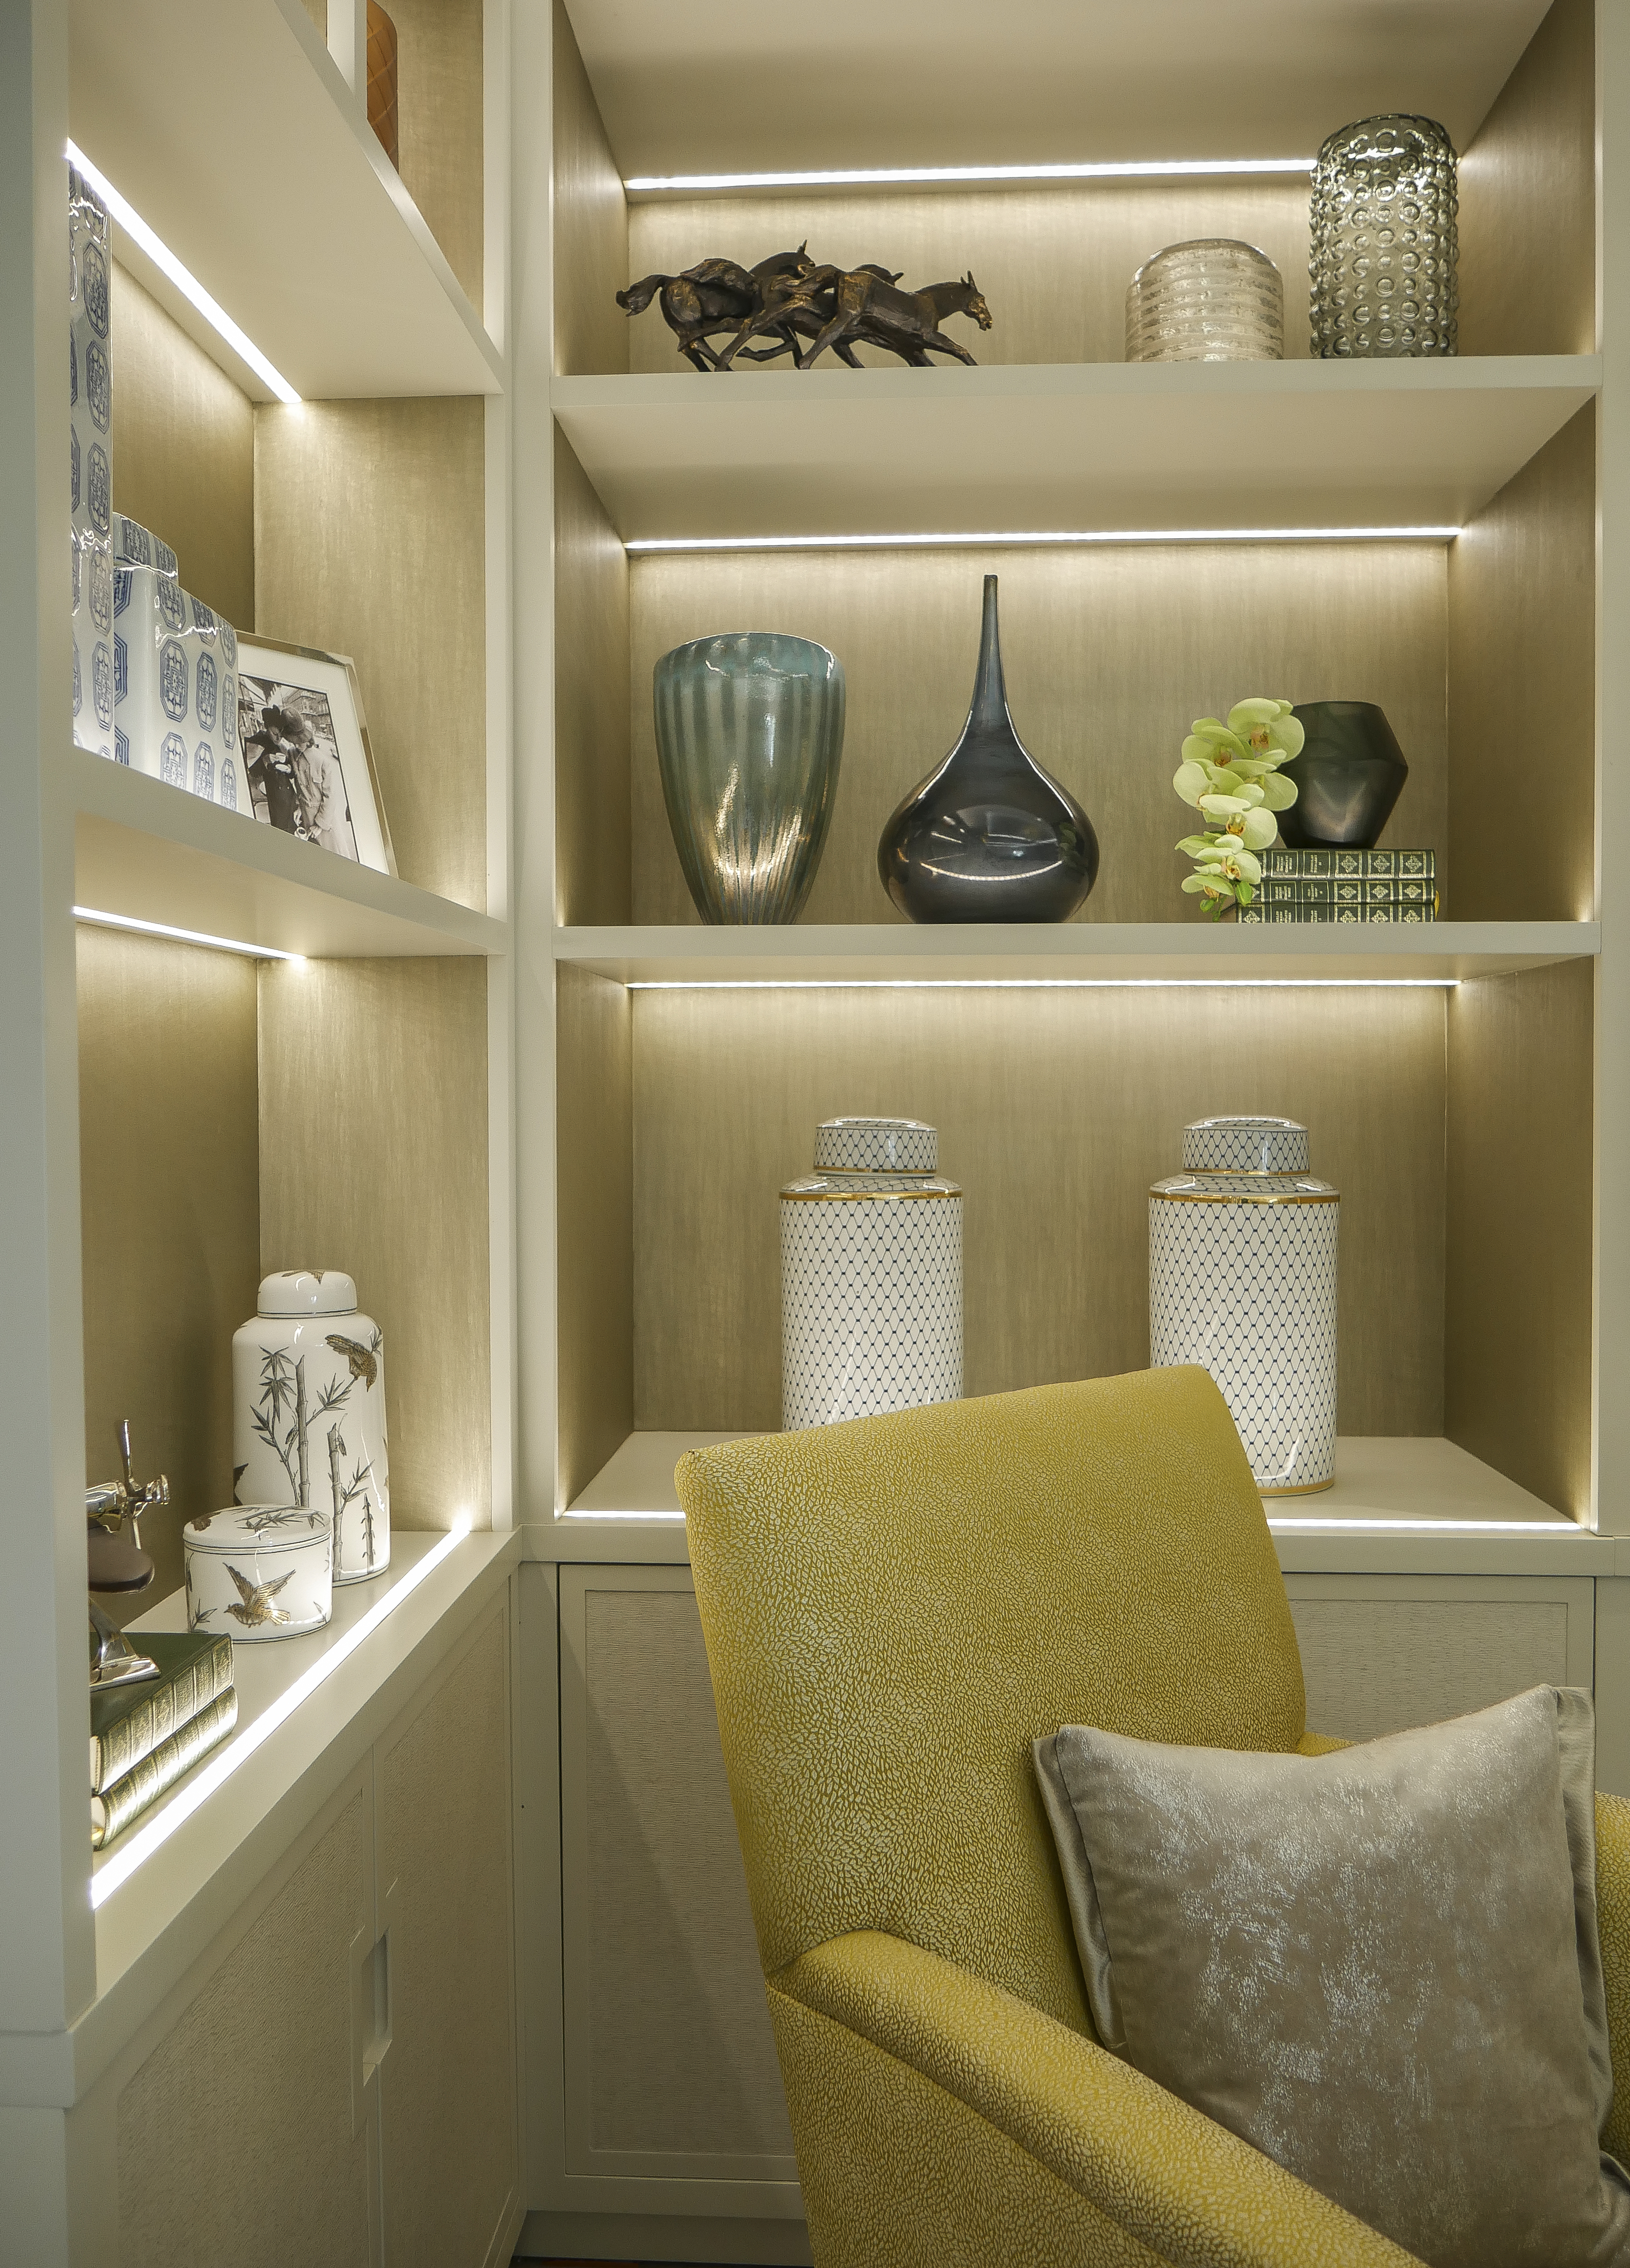 Bespoke cabinetry detail